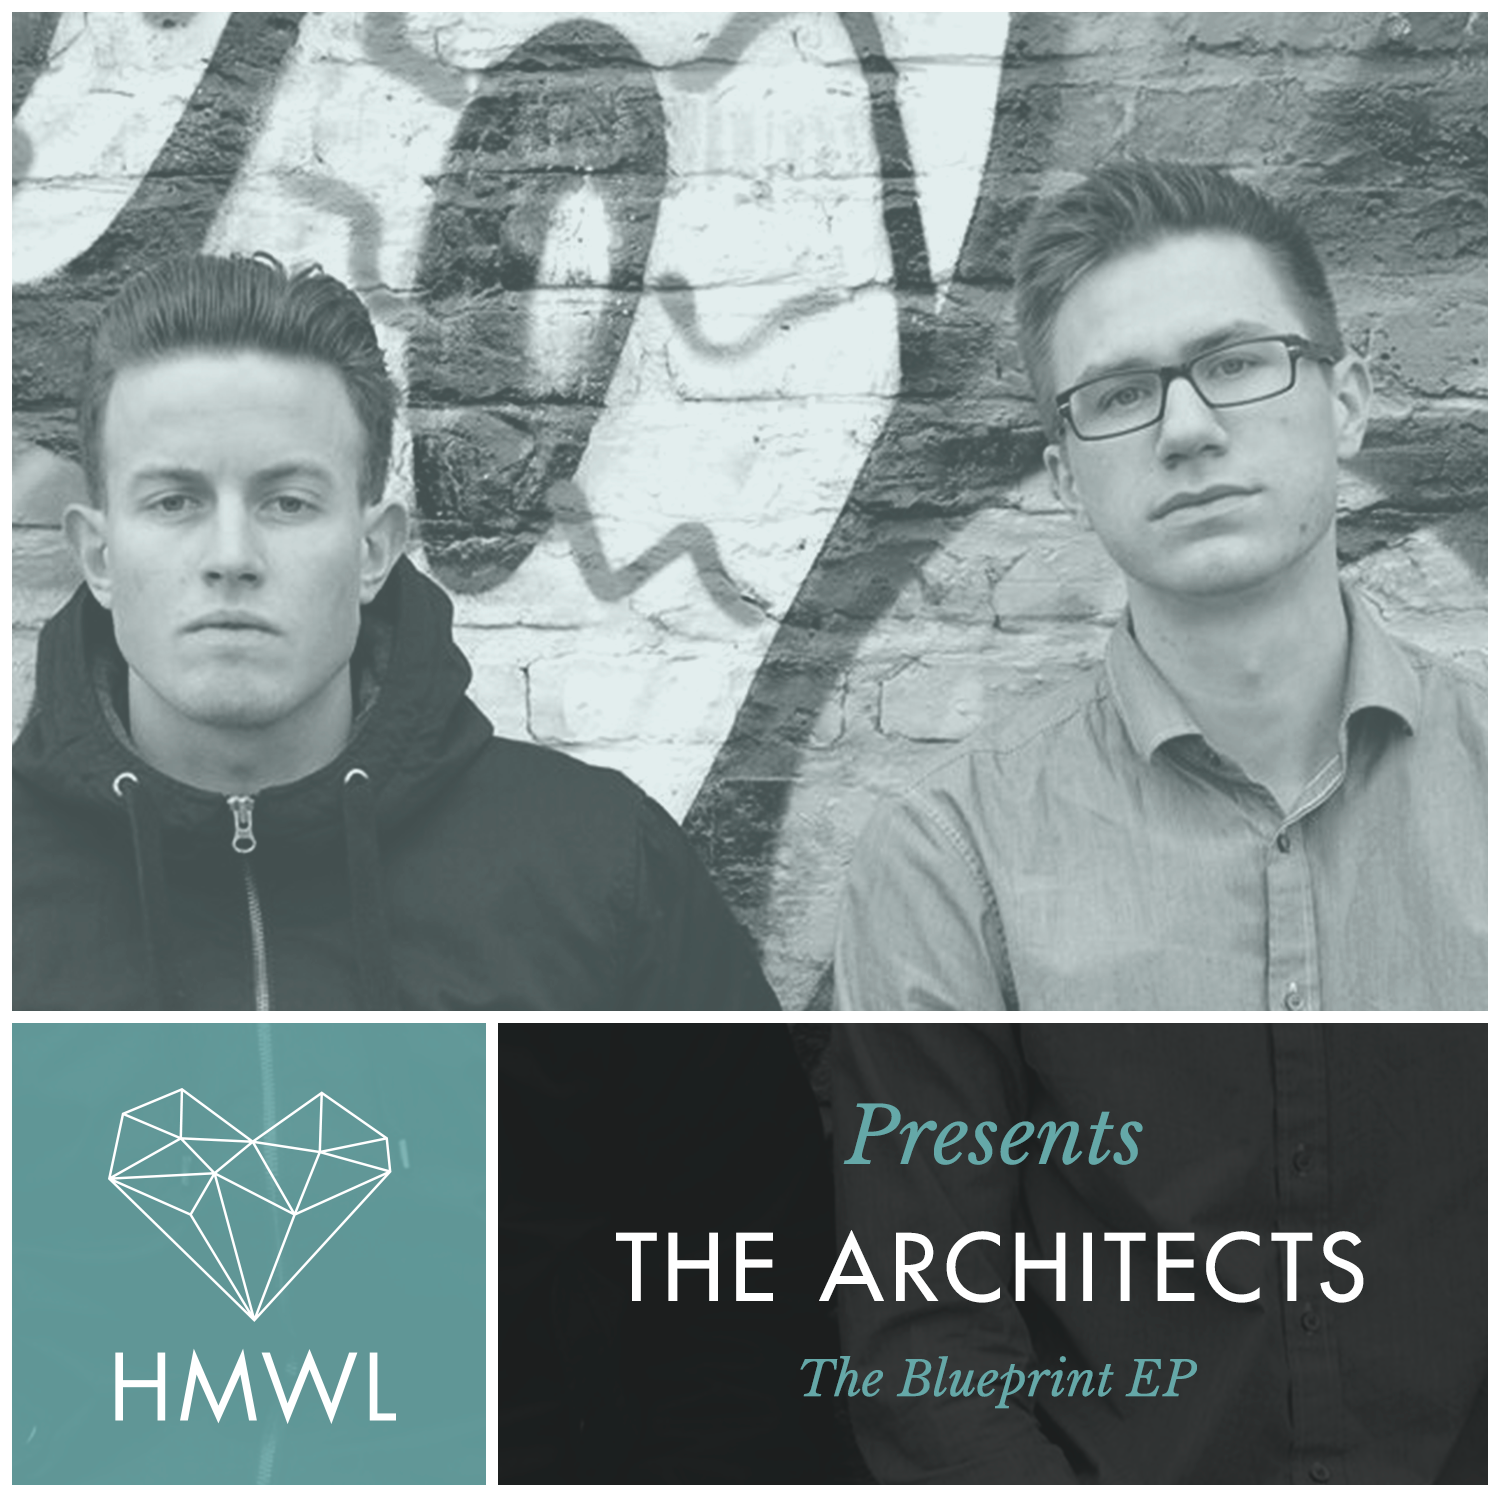 1 hmwl presents the architects blueprint ep cover art hmwl uploaded malvernweather Image collections